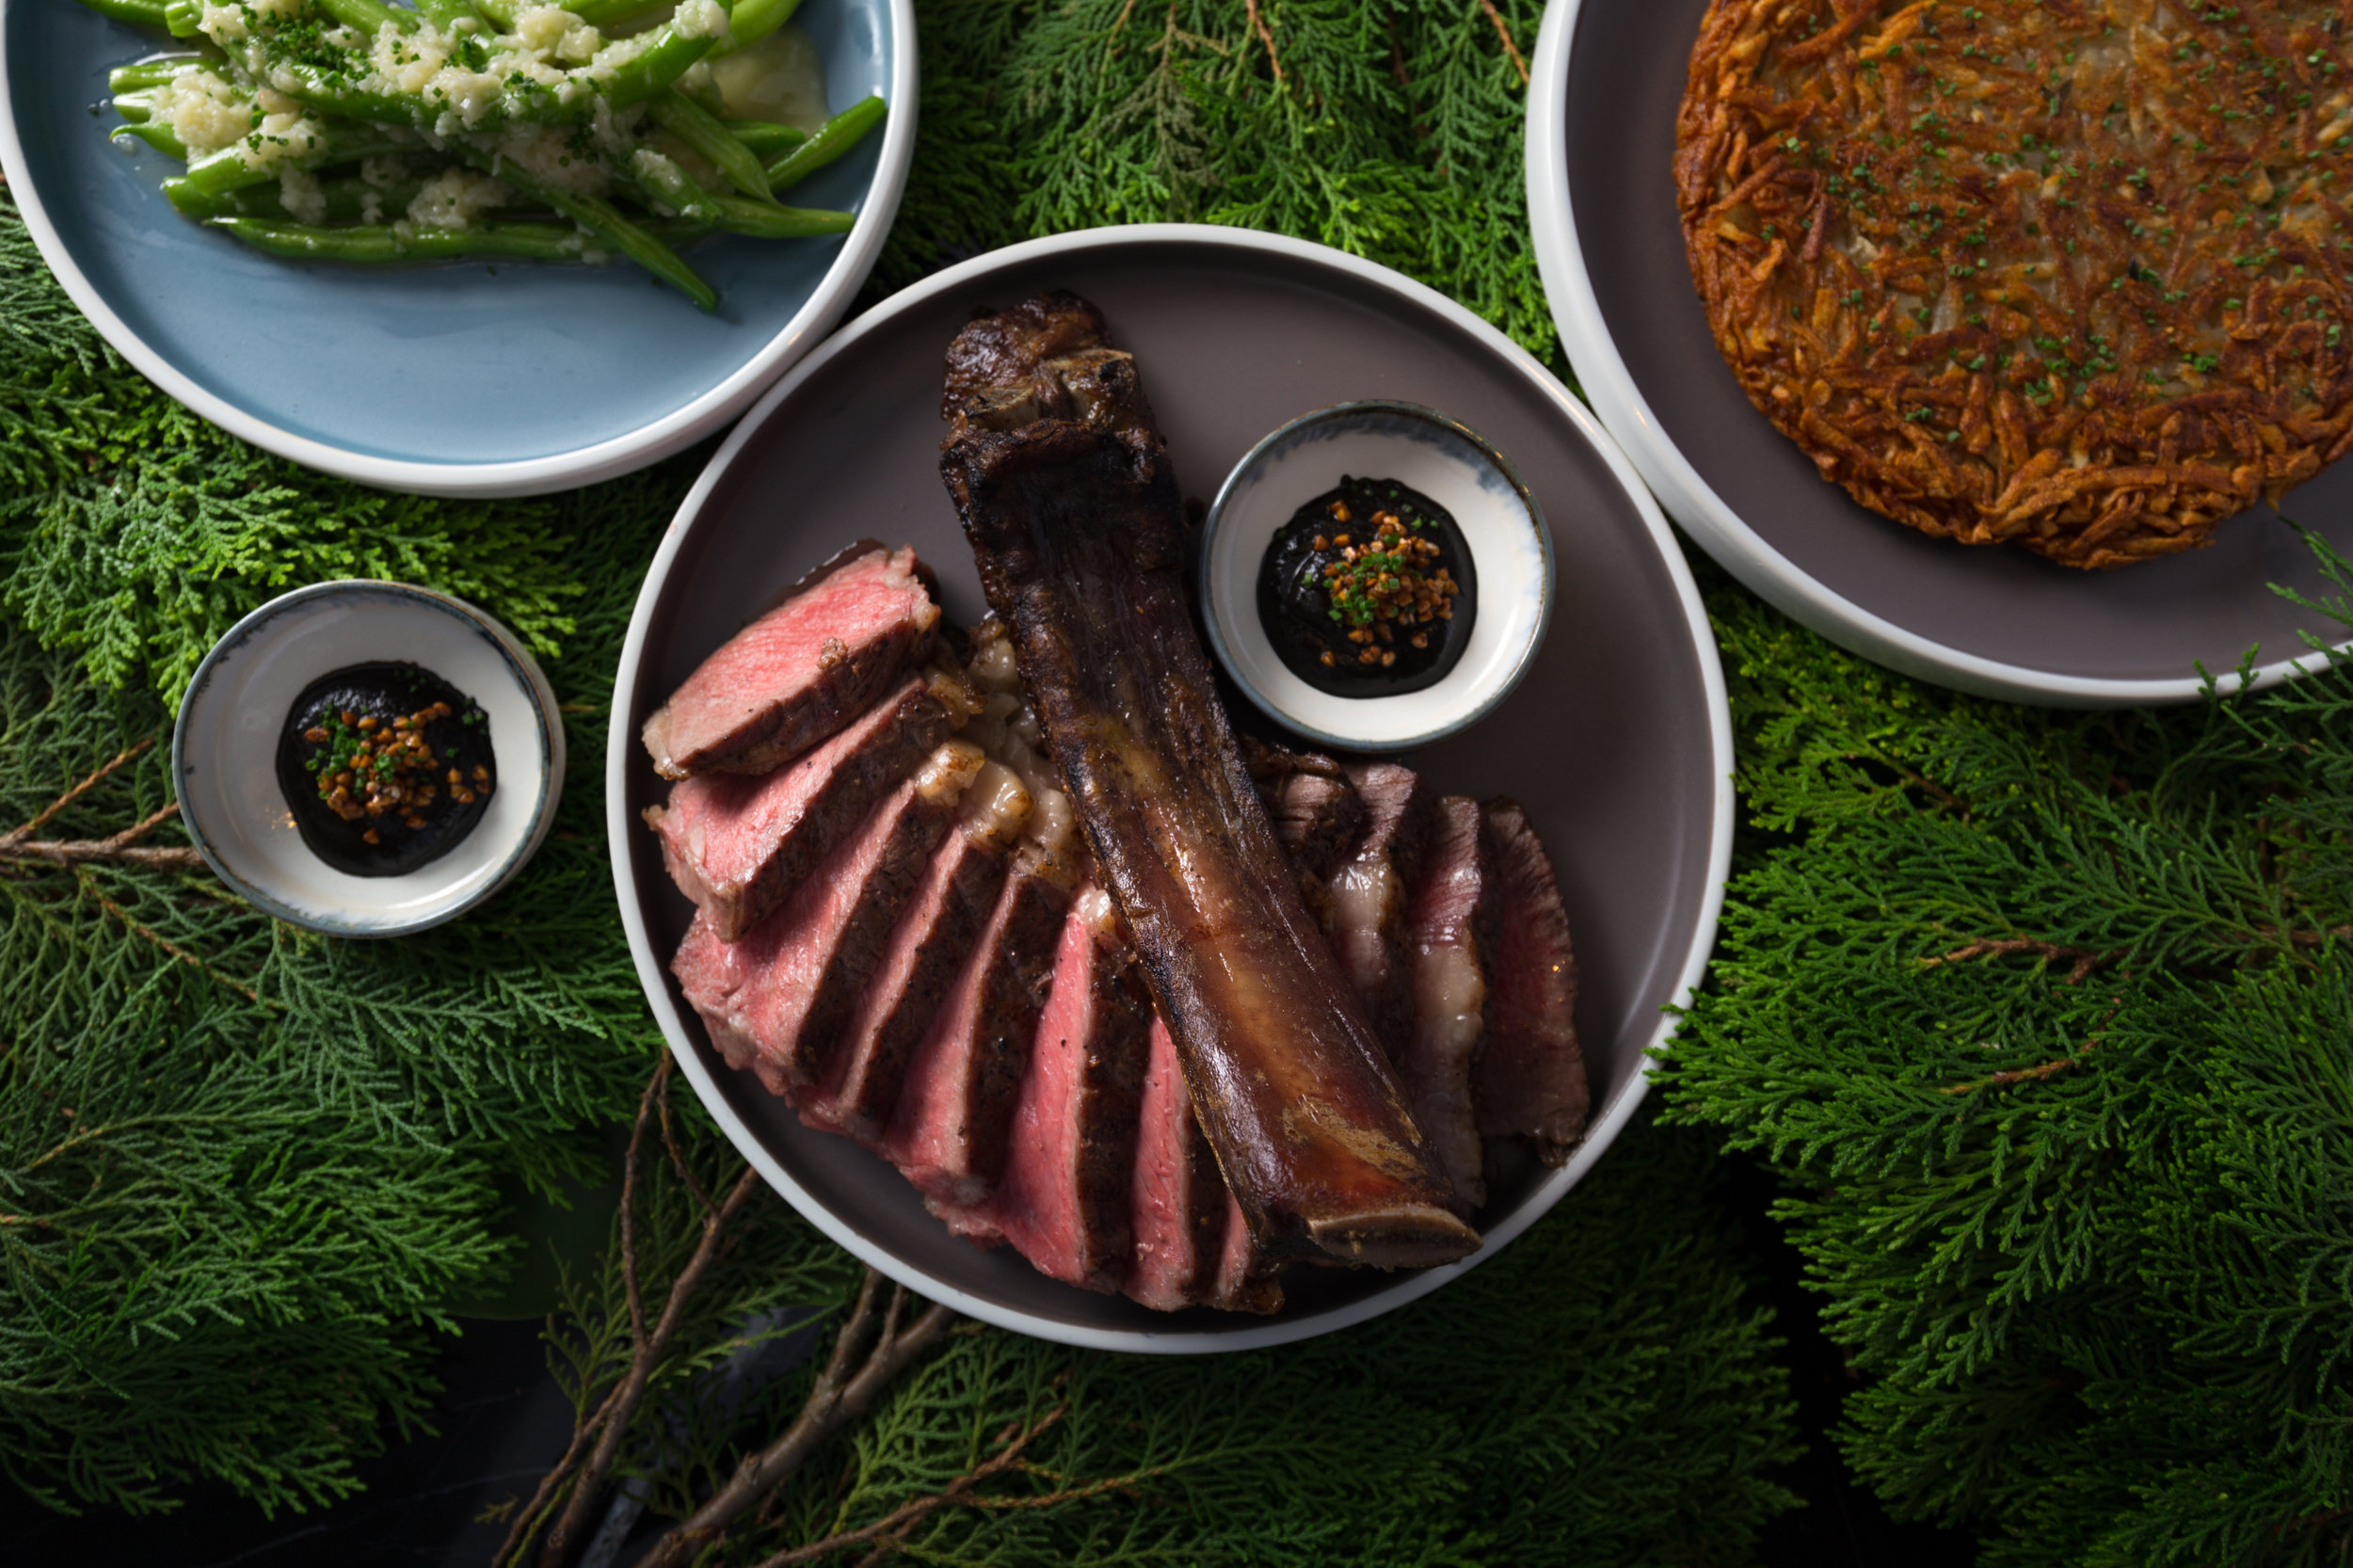 DRY-AGED PRIME RIB - 45-day dry-aged U.S. cote de boeuf, rosti wih katsuobushi, vegetables, 90-day housemade black garlic900g-1.4 kg, for 2-4 guests to share18.8/100g